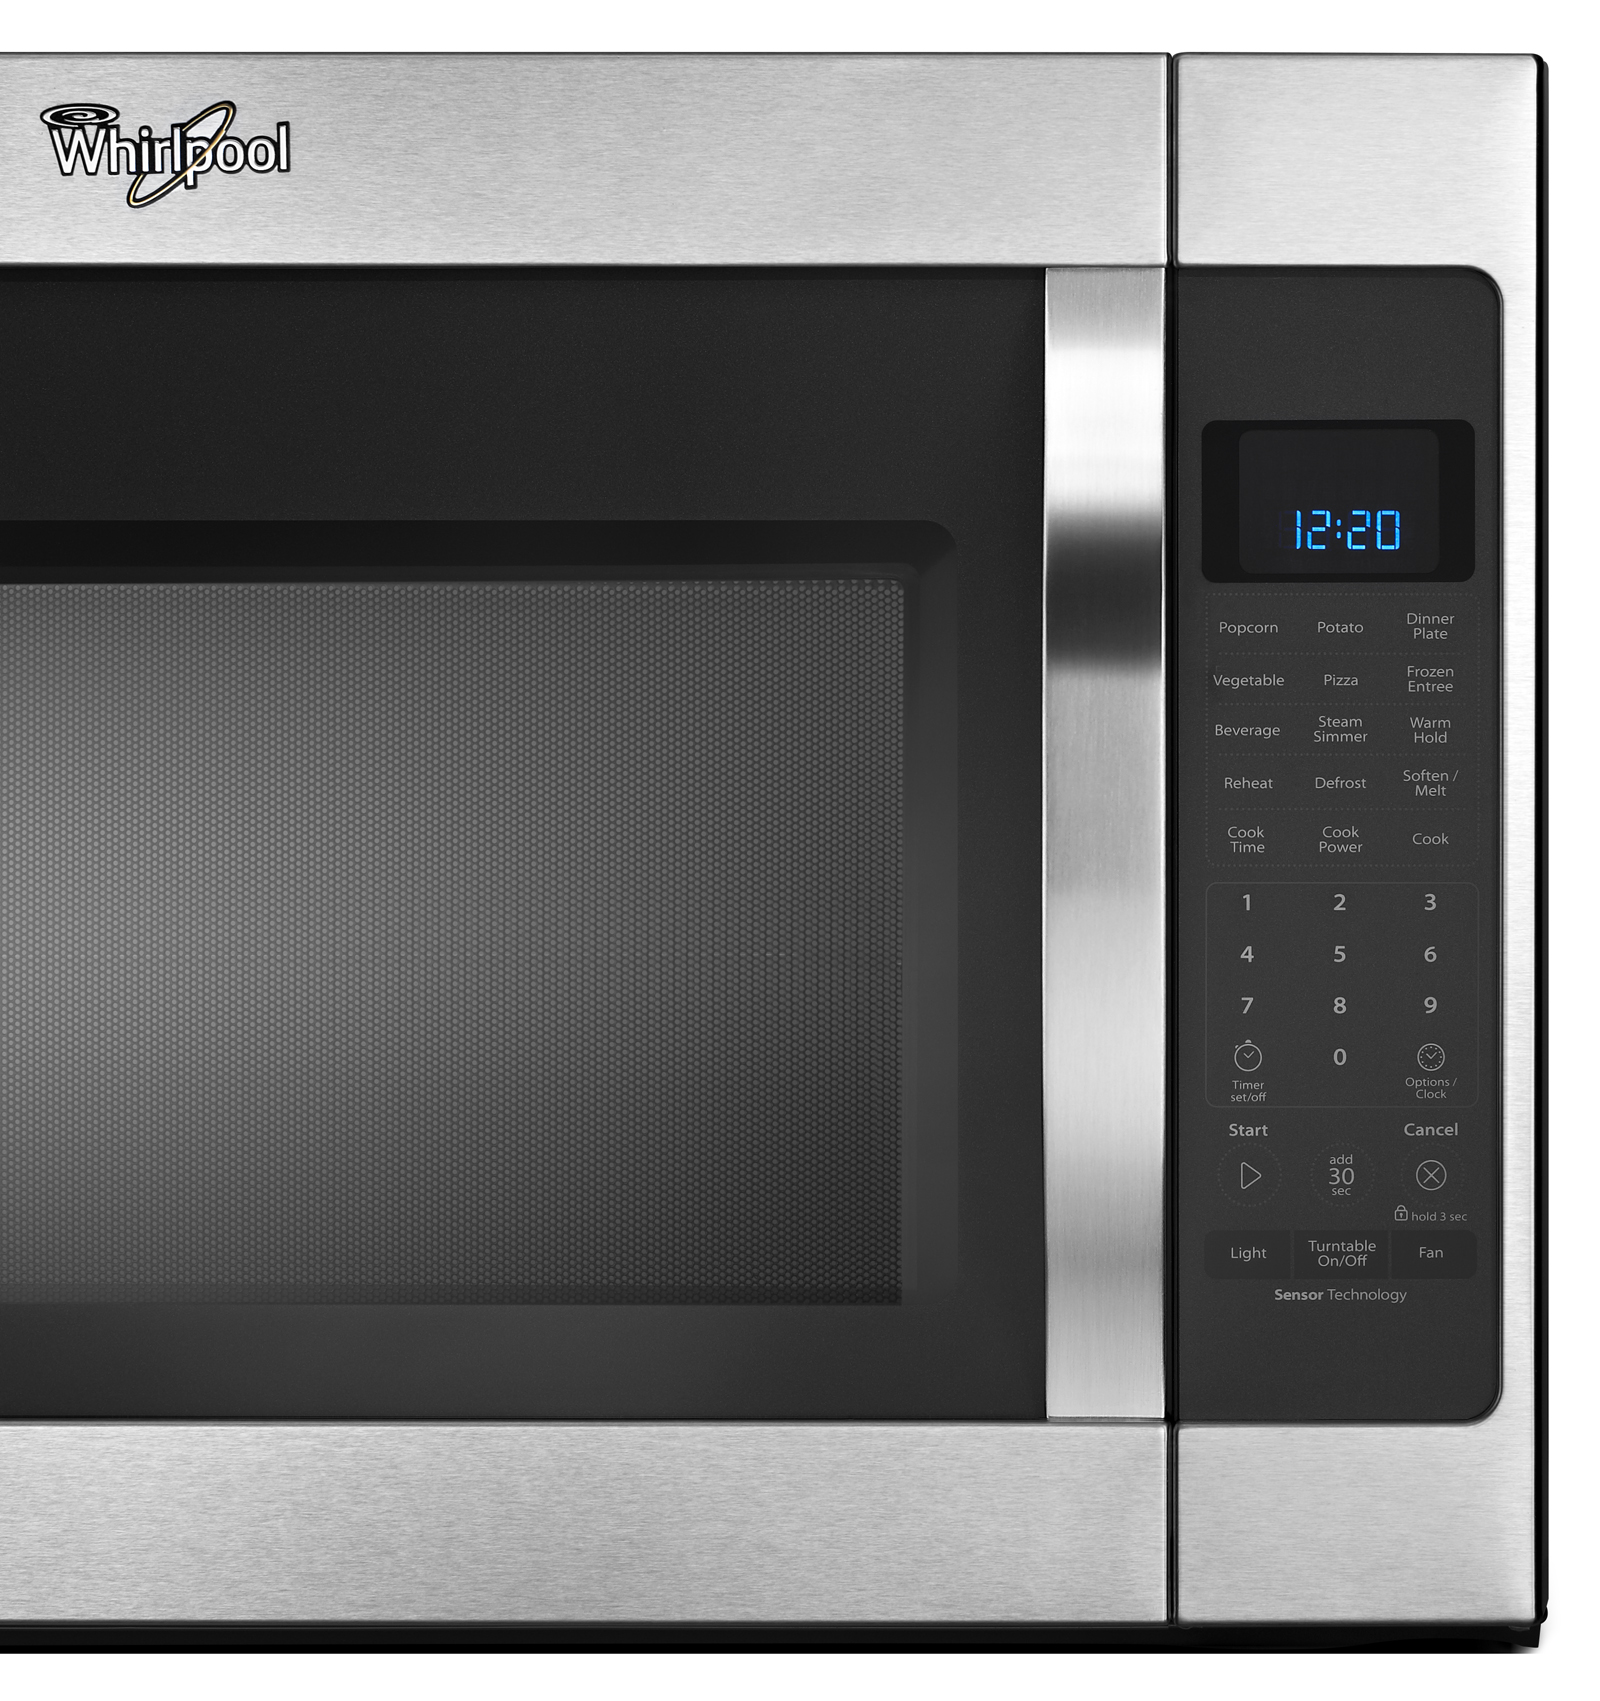 Whirlpool 2.0 cu. ft. Over-the-Range Microwave w/ CleanRelease® Non-Stick Interior - Stainless Steel